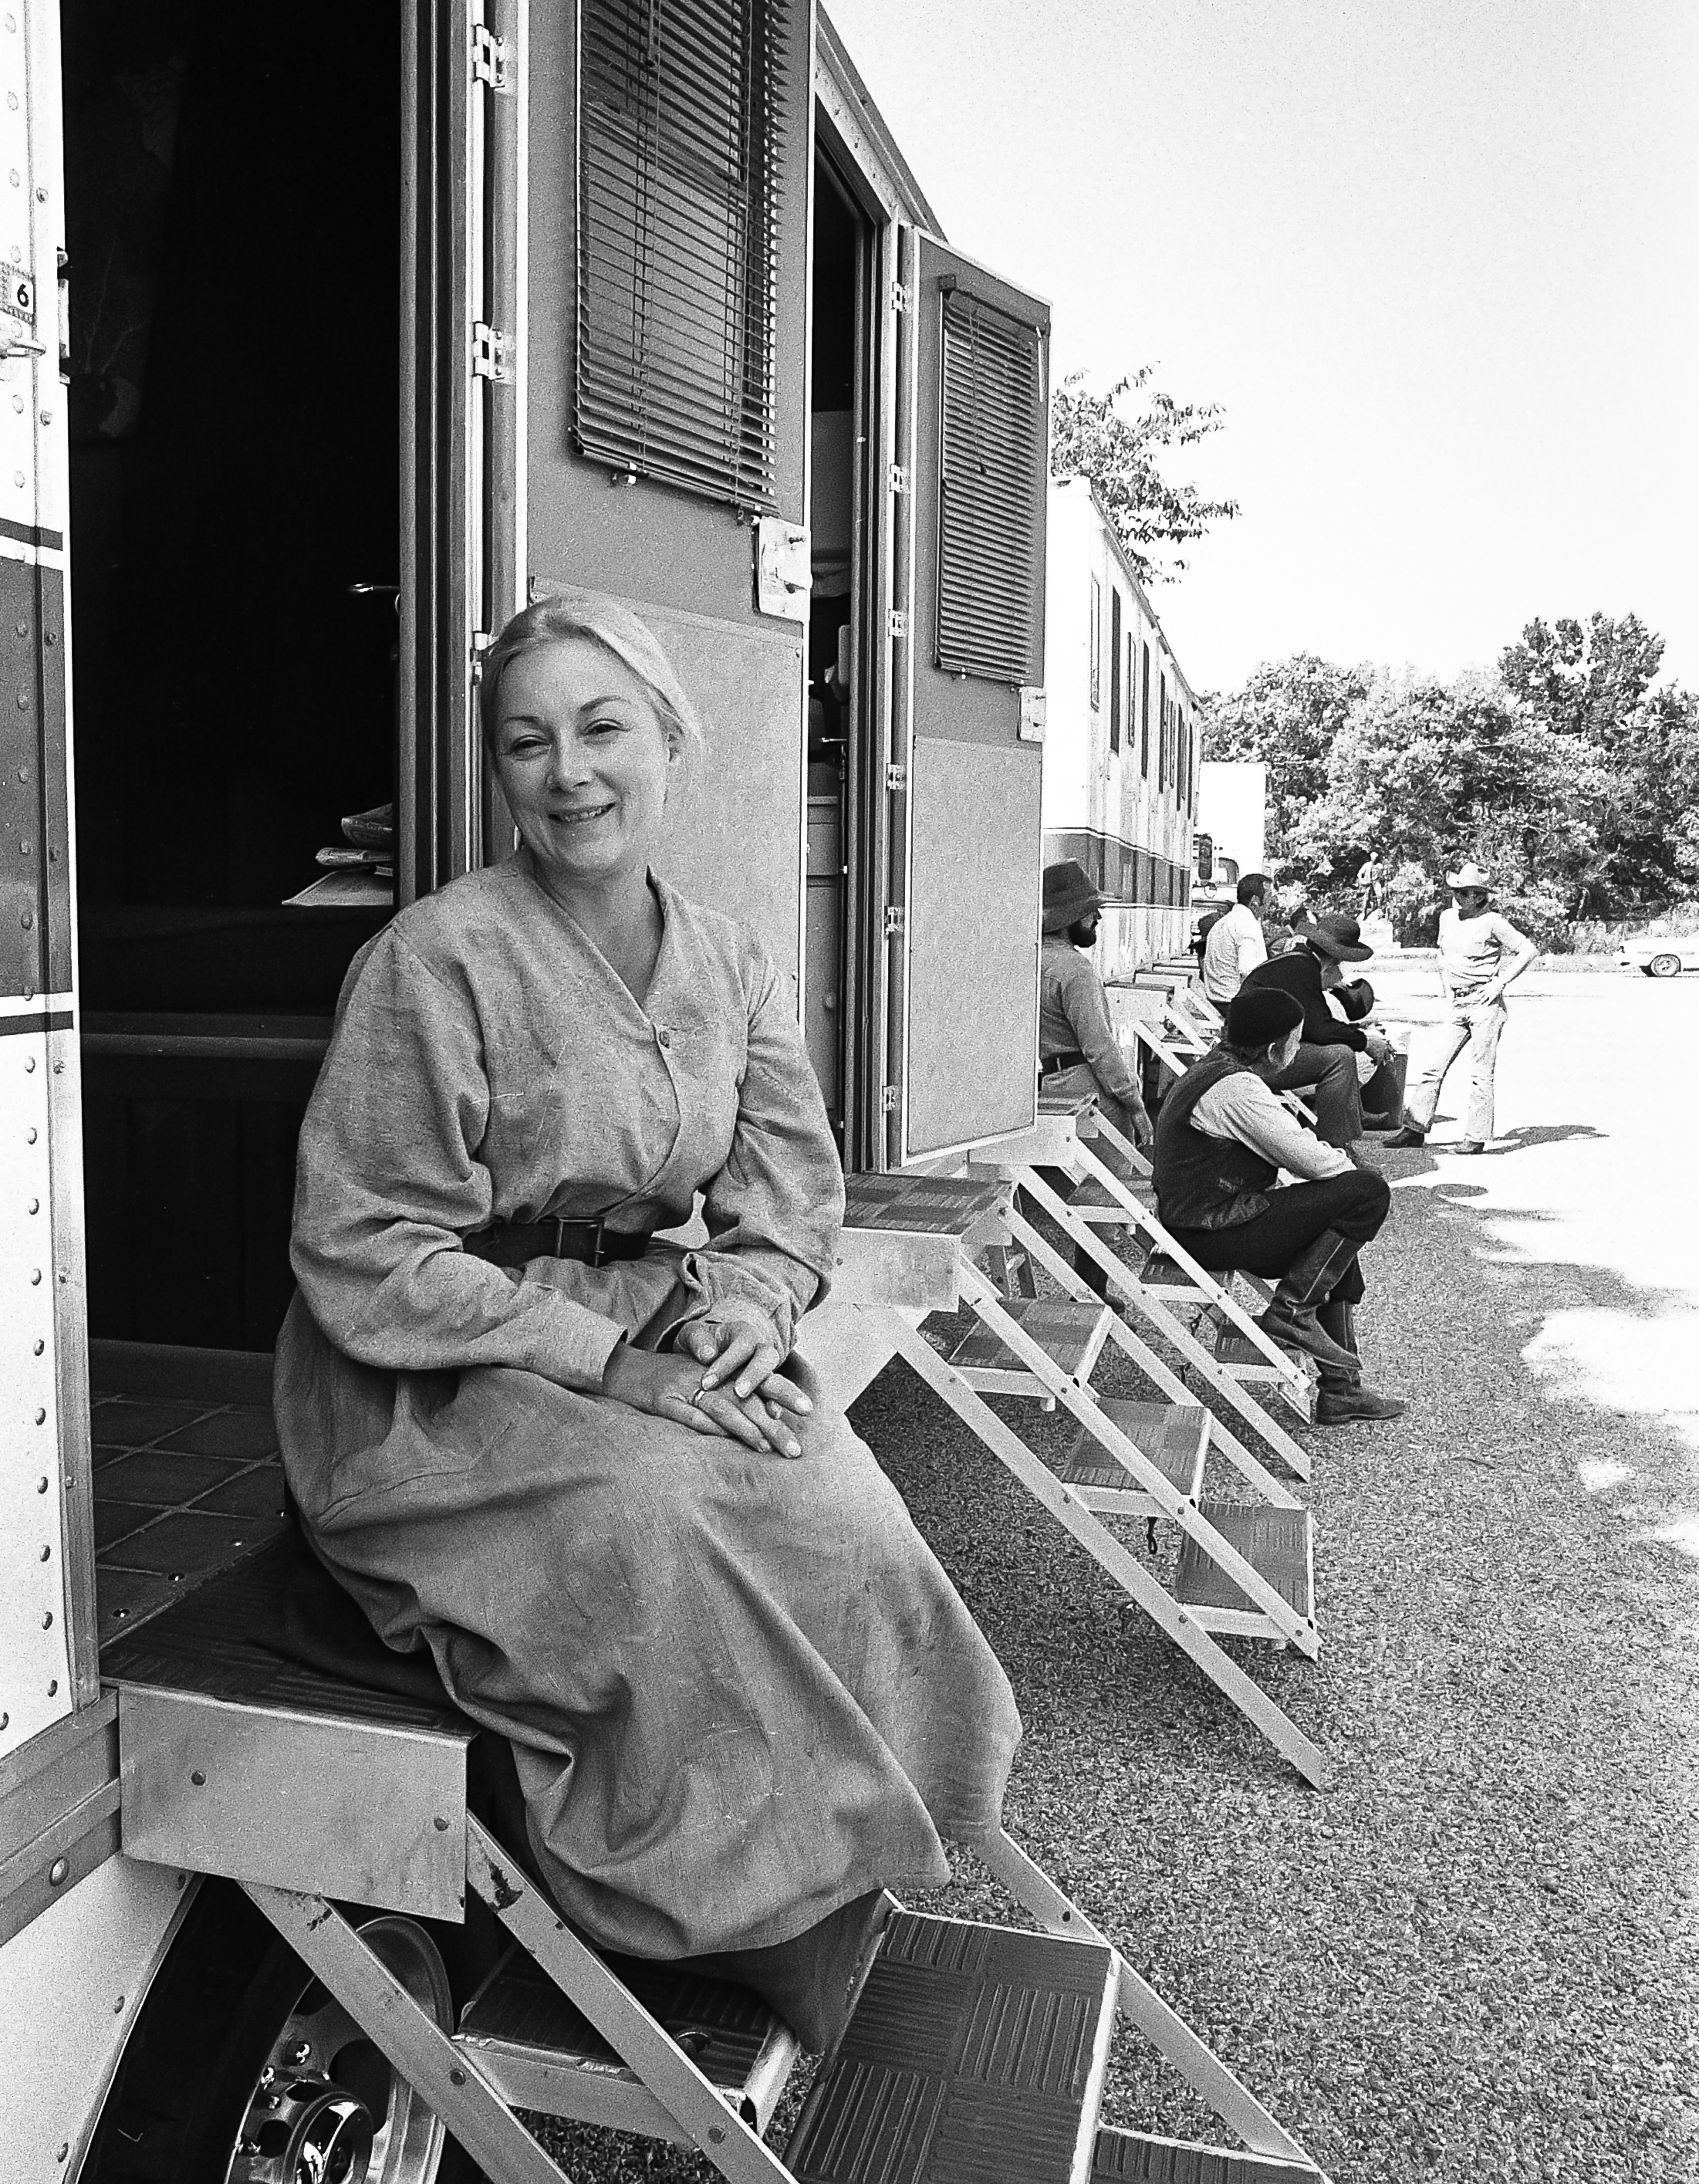 """Lead actress Rosemary Harris during a break in filming for the television mini series """"The Chisholms"""" at New Salem State Historic Site, October 2, 1978. File/Bill Hagen/The State Journal-Register"""